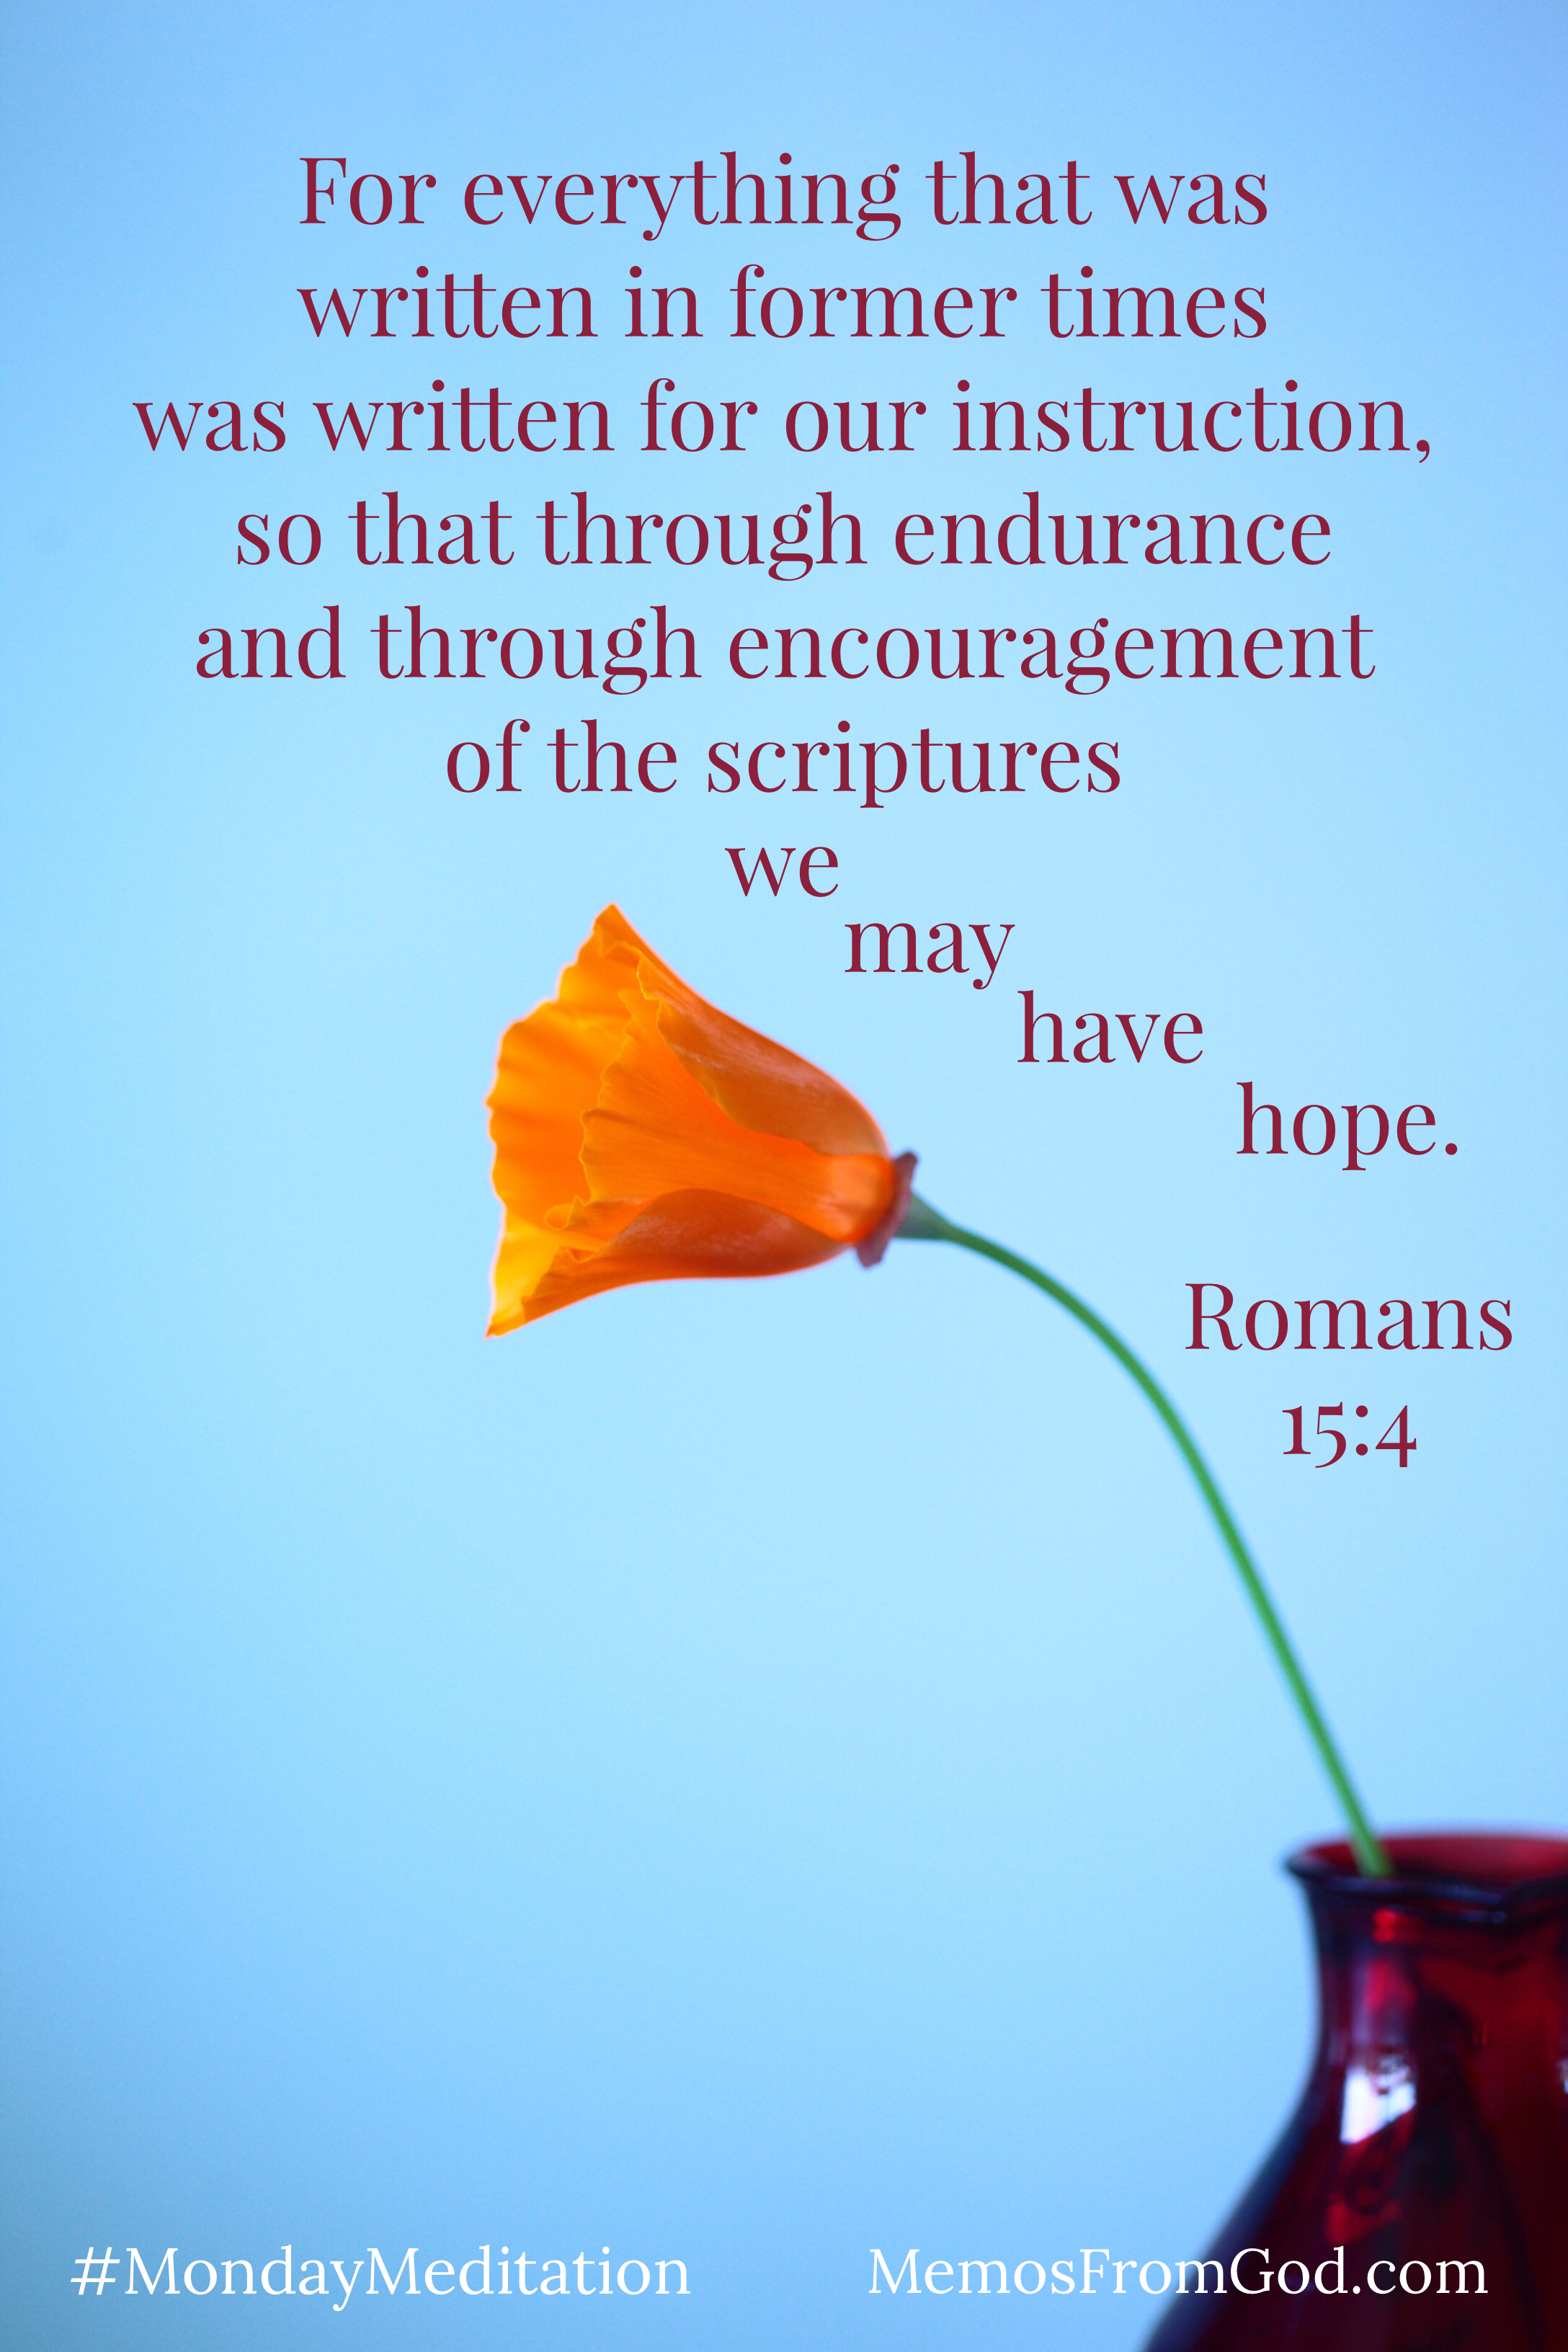 A single, small orange flower in a burgundy vase. Caption: For everything that was written in former times was written for our instruction, so that through endurance and through encouragement of the scriptures we may have hope. Romans 15:4